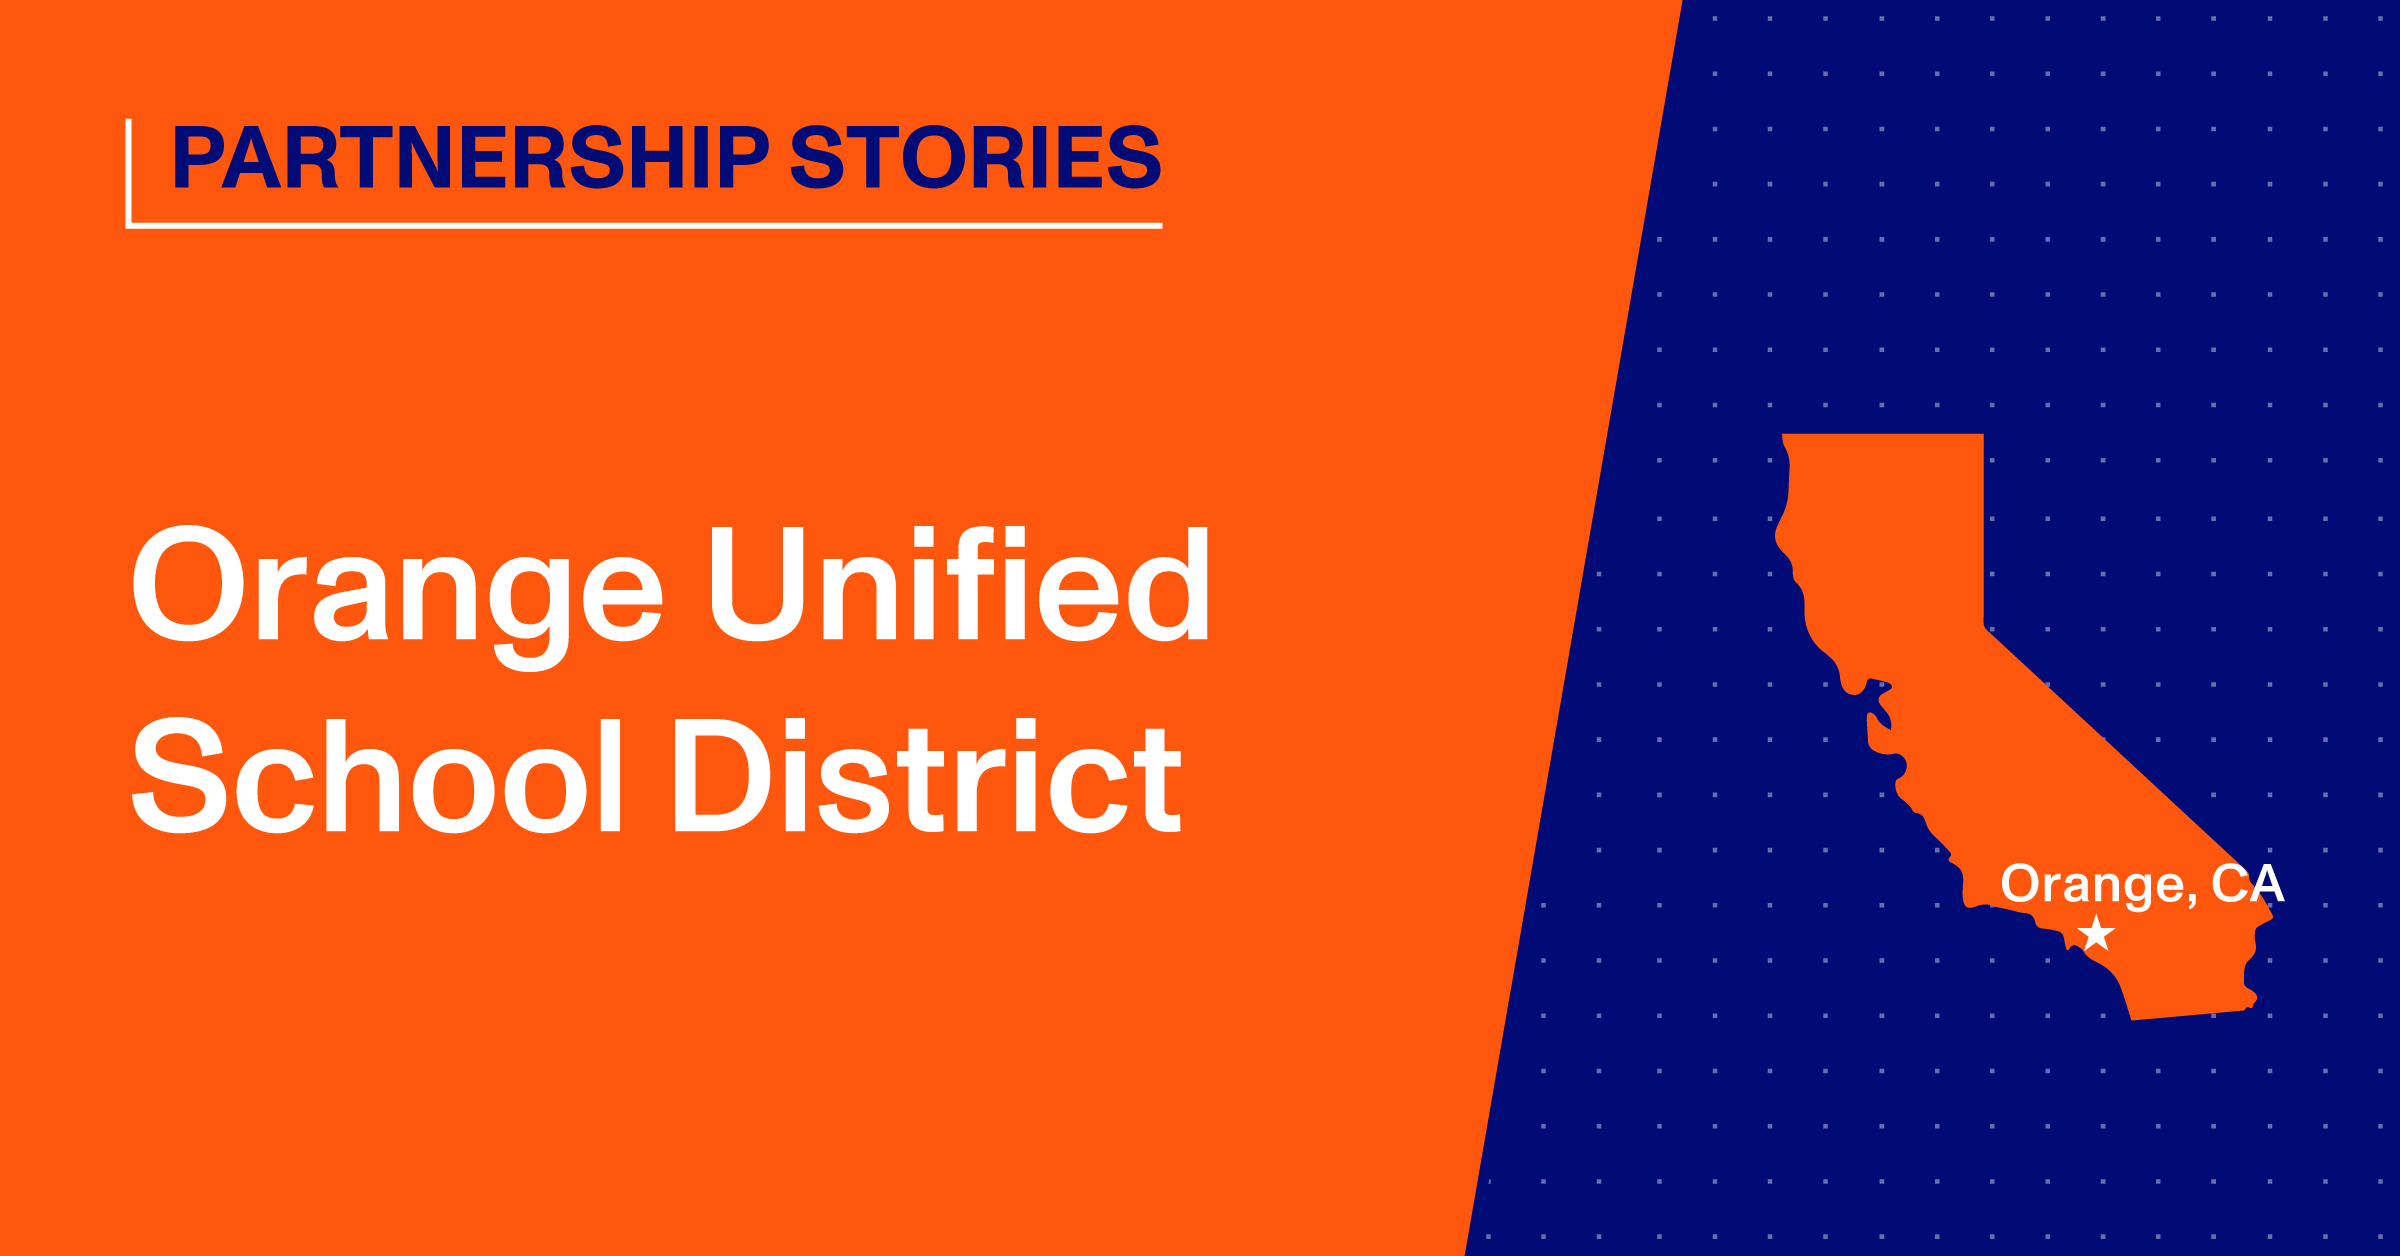 Orange Unified School District